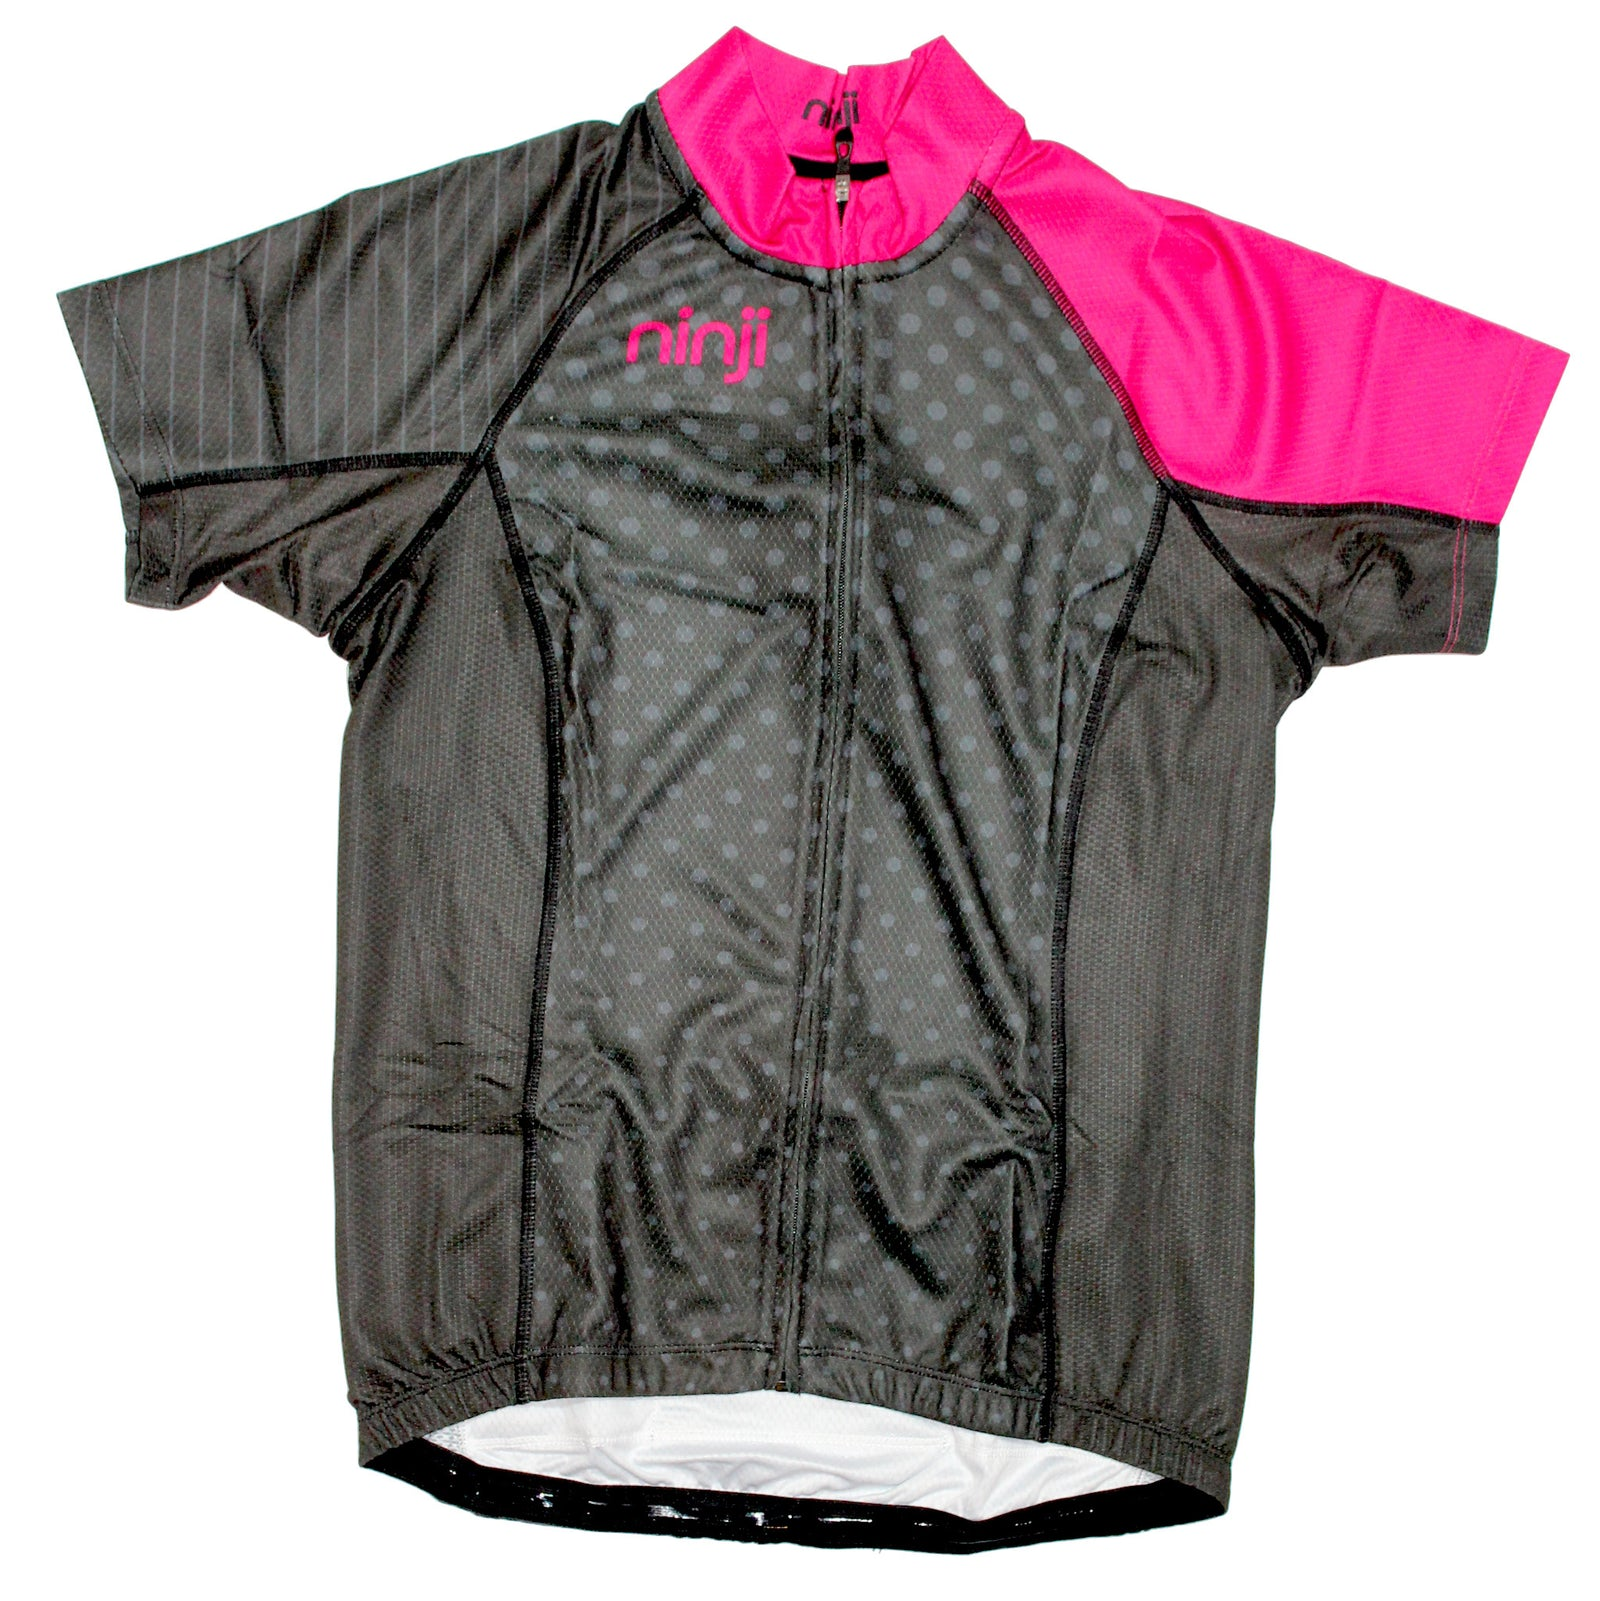 WOMENS SS JERSEY - BLACK DOTS